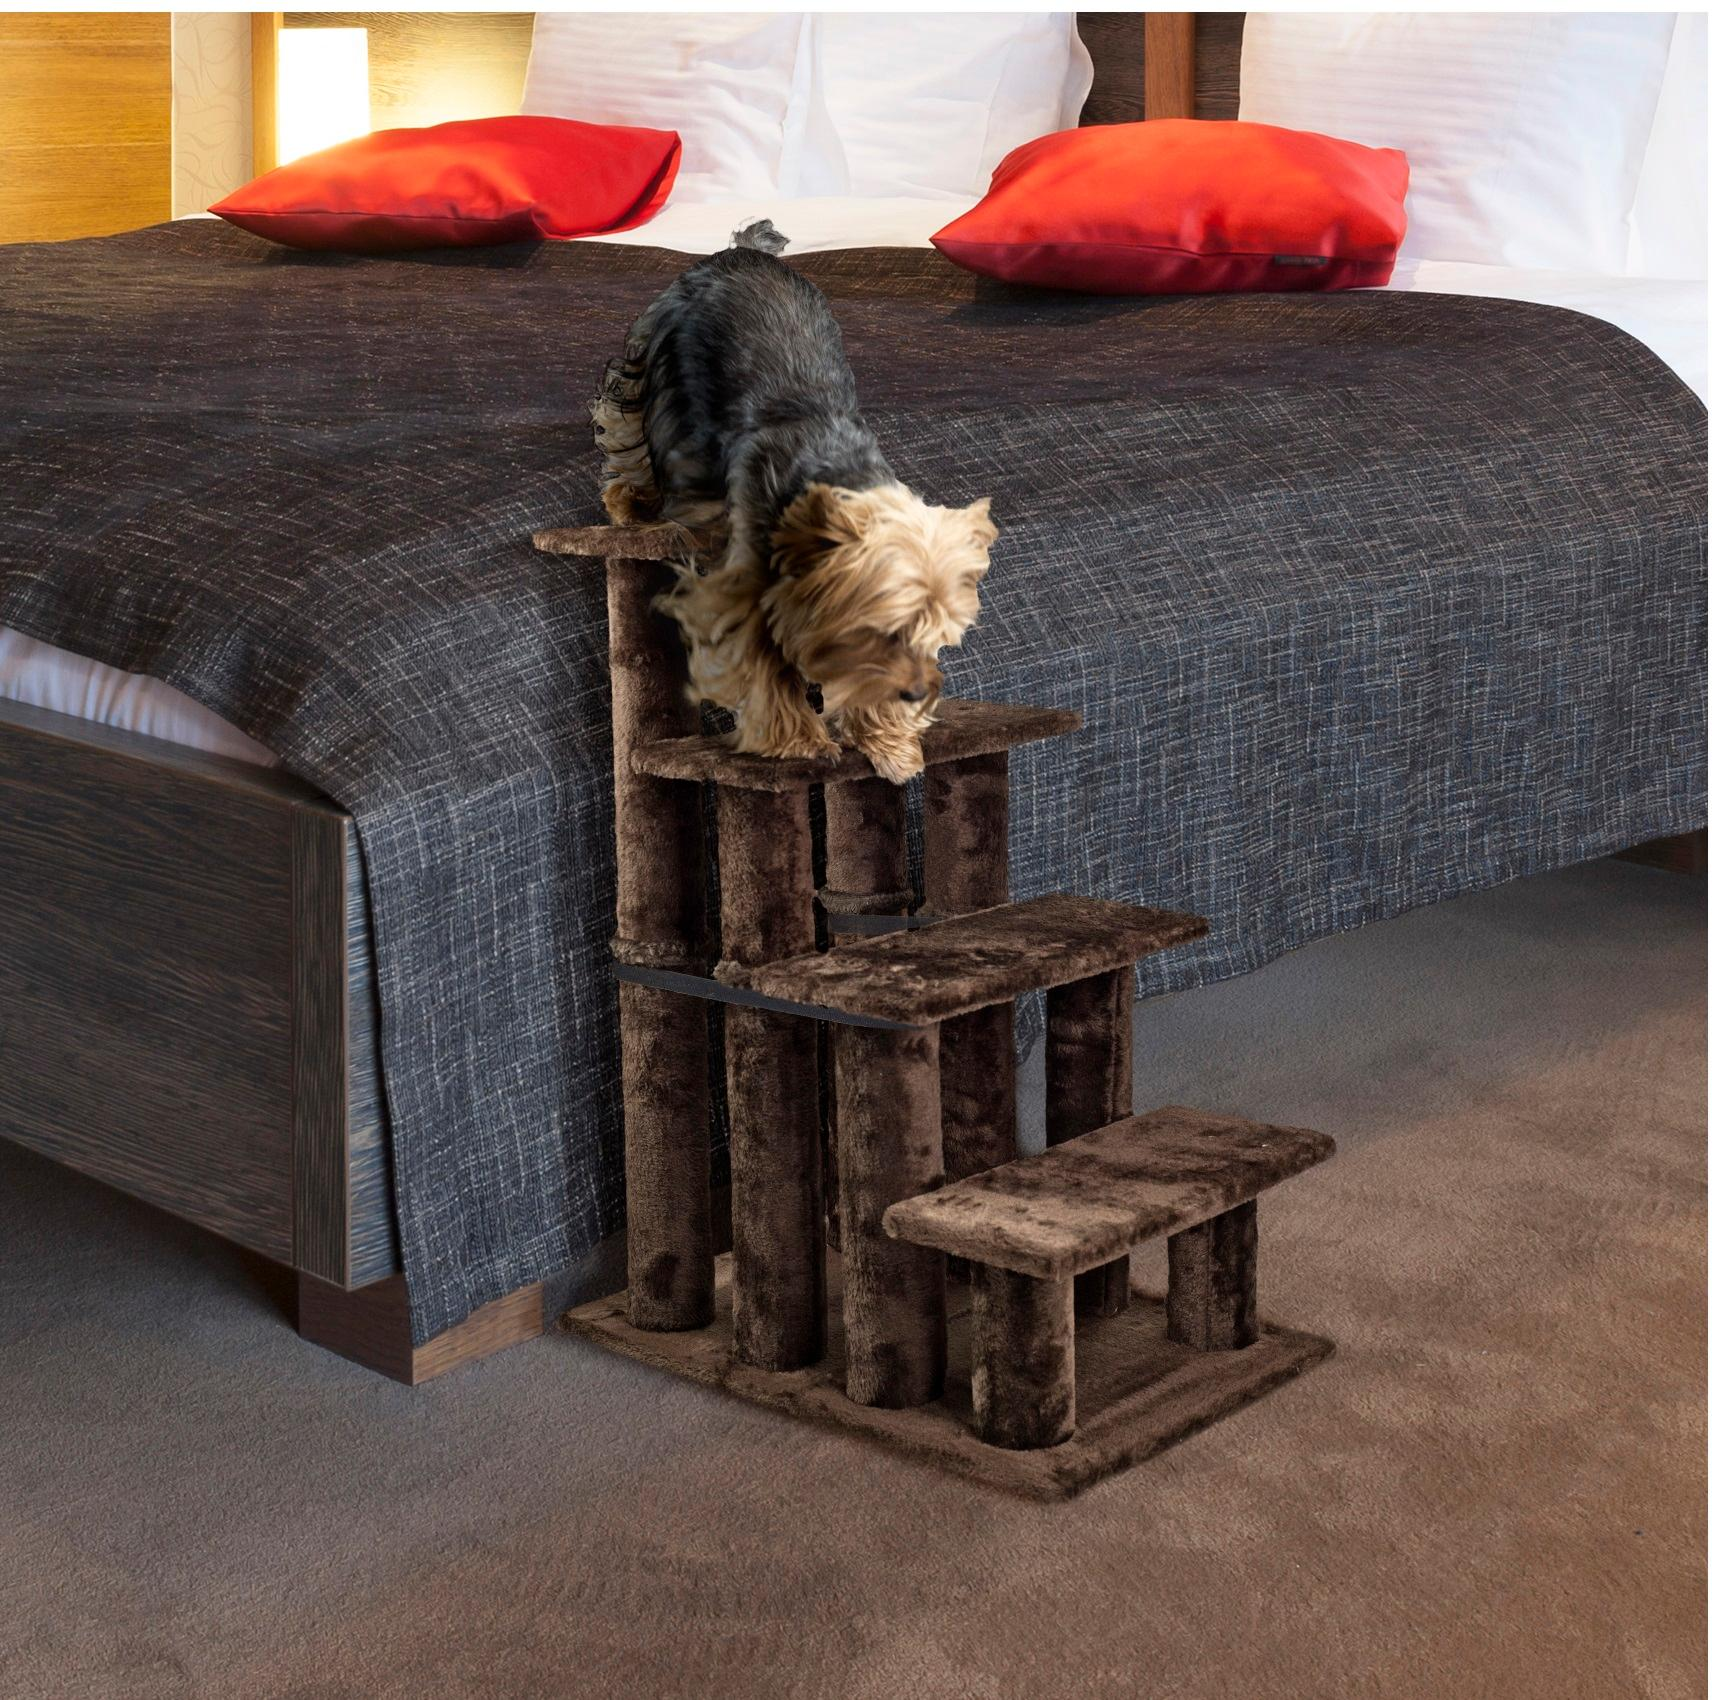 These Pet Stairs Are Available In A 3 Step Or 4 Step So That You Can Find  The Perfect Size To Fit Your Petu0027s Needs. The 3 Step Stairs Are Ideal For  ...